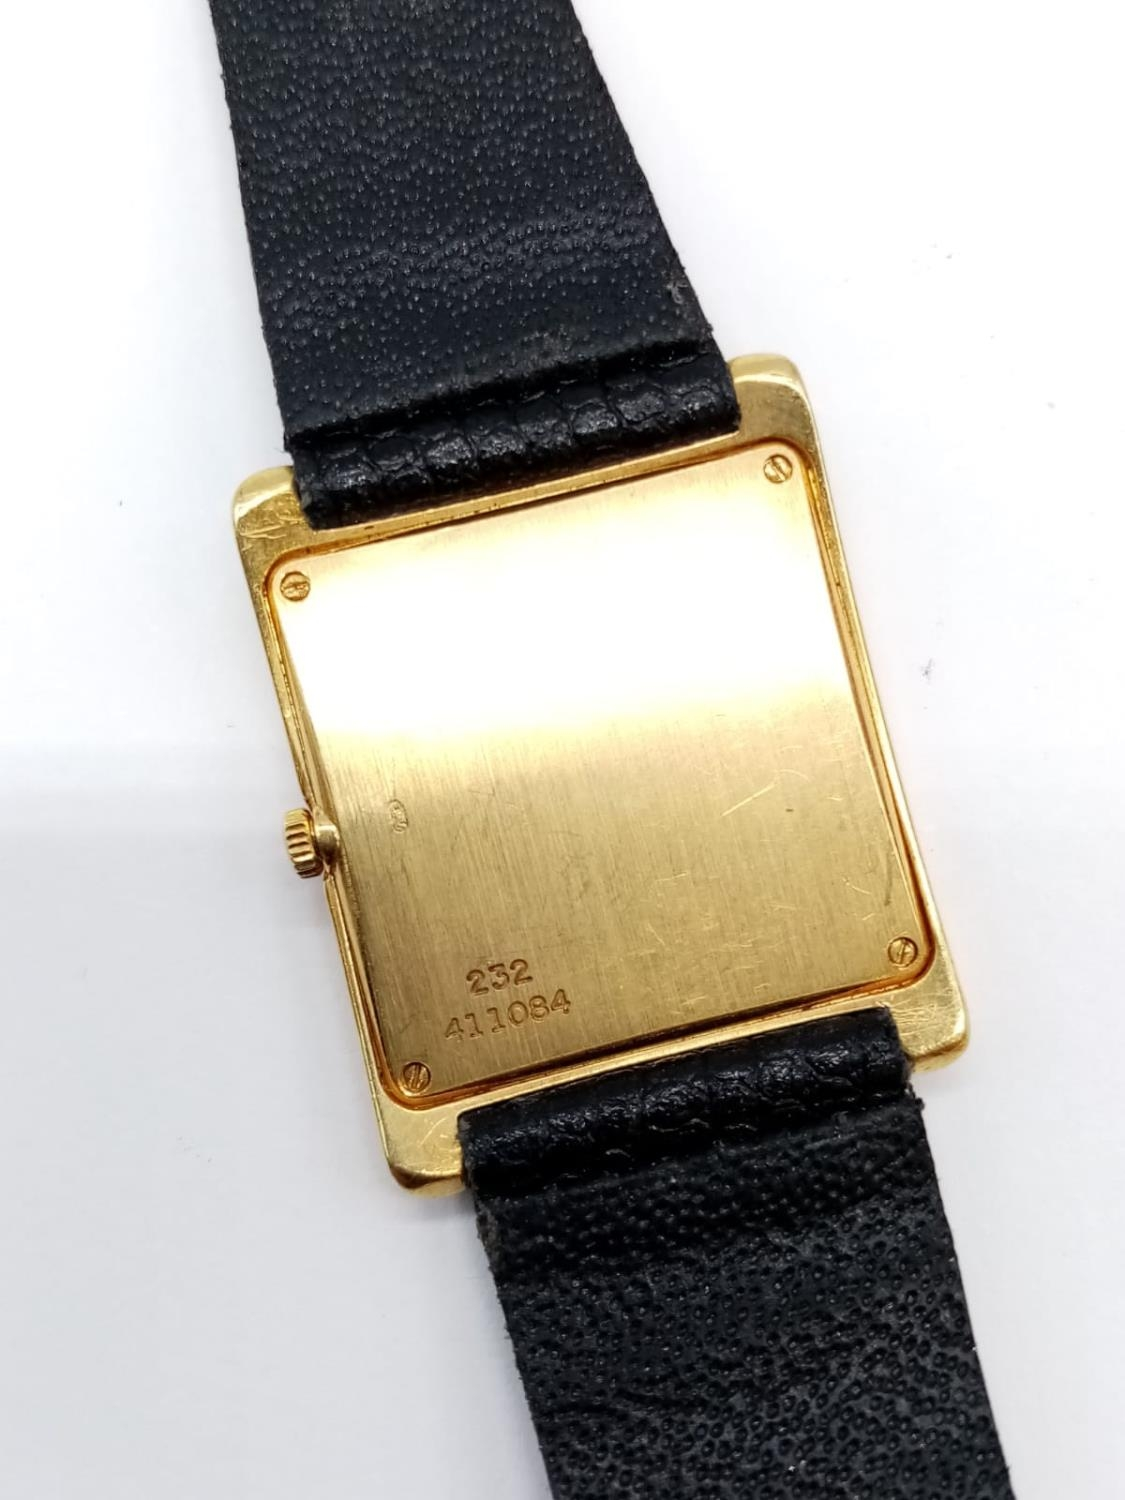 Vintage Plaget 18ct gold ladies watch with square face (22mm) and leather strap - Image 8 of 10